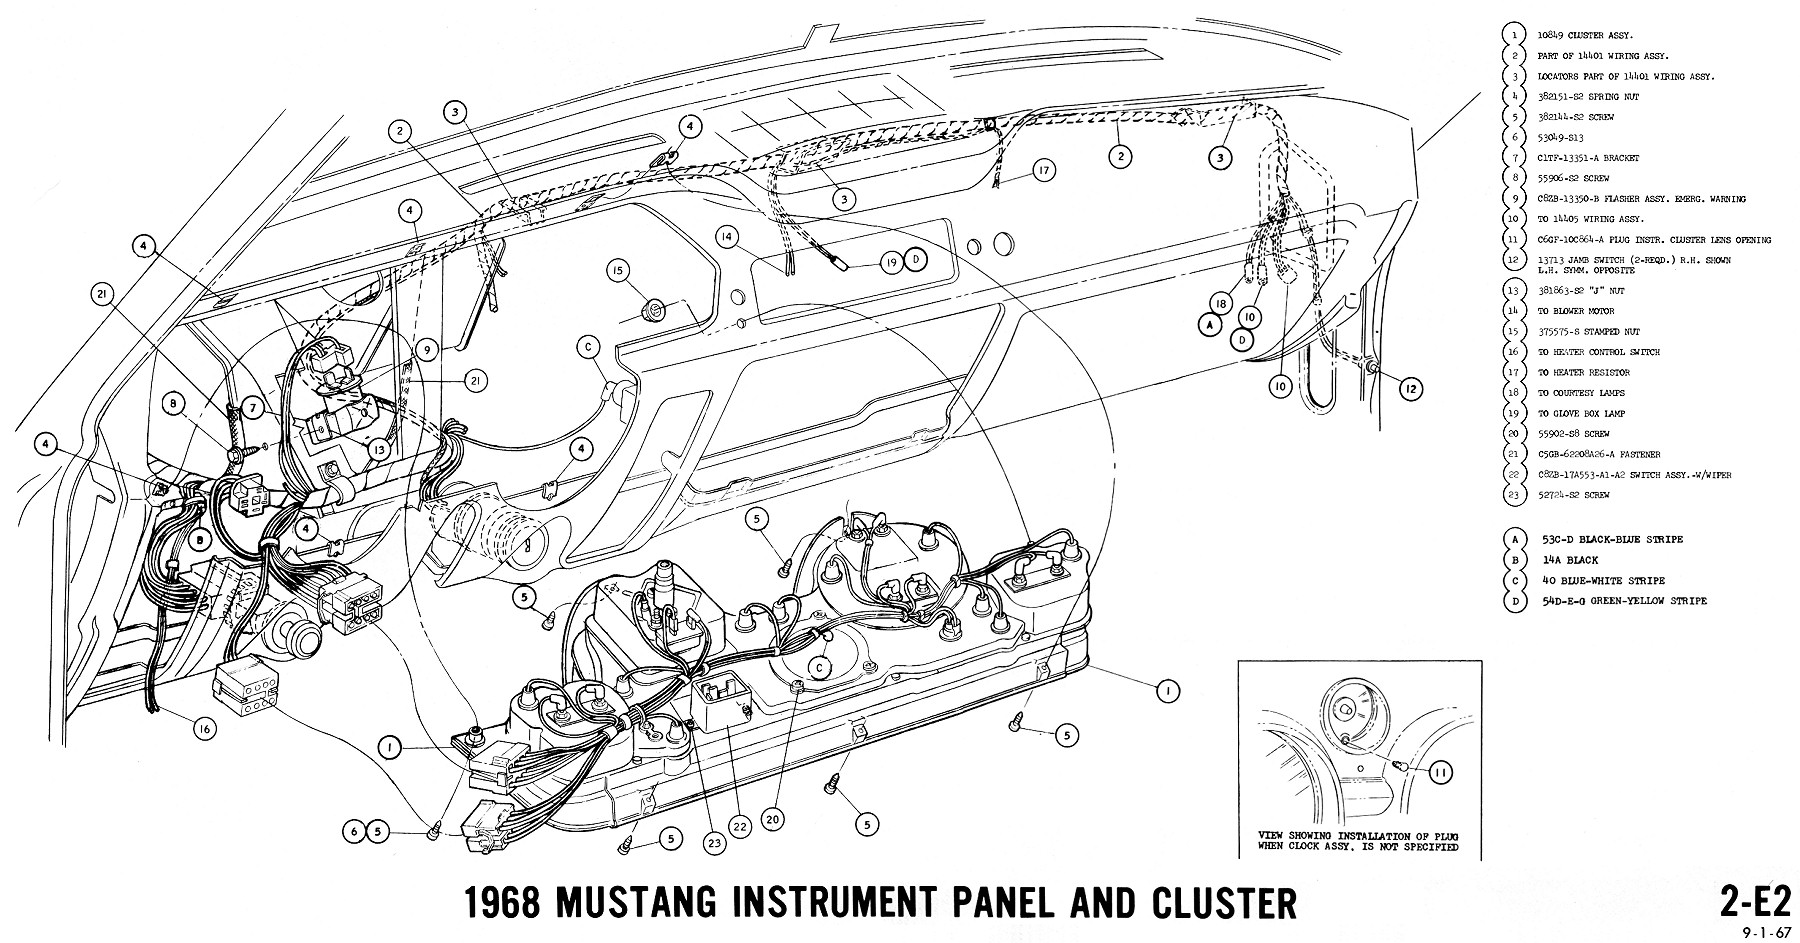 1968 mustang wiring diagram instruments 2 66 mustang wiring diagram 1966 mustang dash wiring diagram 65 mustang dash wiring diagram at bayanpartner.co